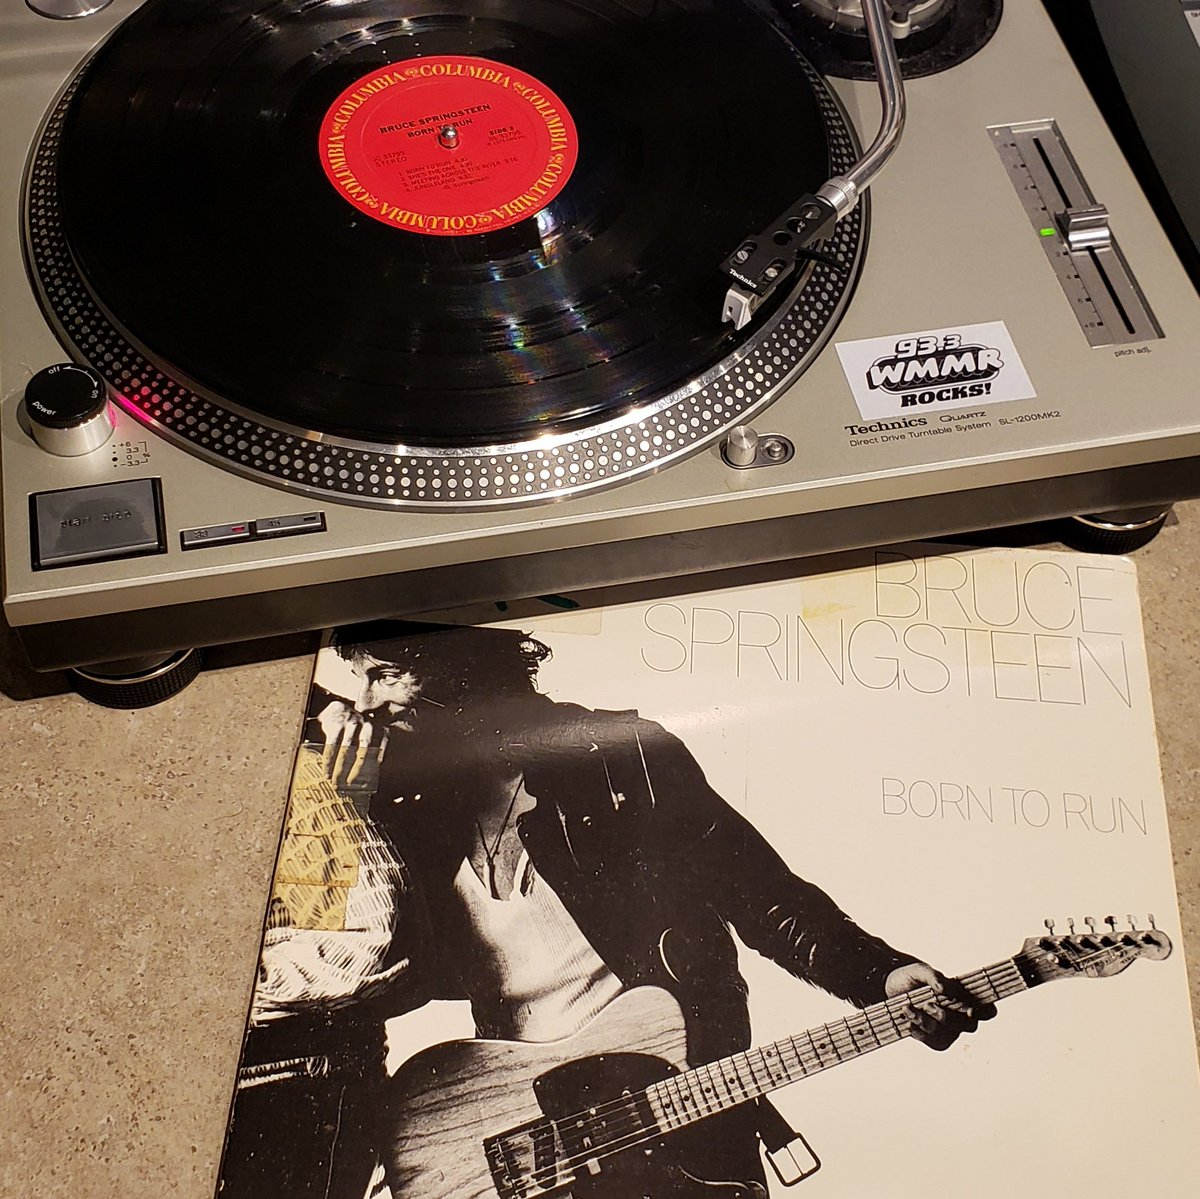 45 years ago today this masterpiece was released and premiered in Philadelphia as it blasted through the @933WMMR airwaves! @Springsteen #BornToRun is 45, tune in at 2pm and hear Side 2 in its entirety ON VINYL! https://t.co/qJHT50Xv2e